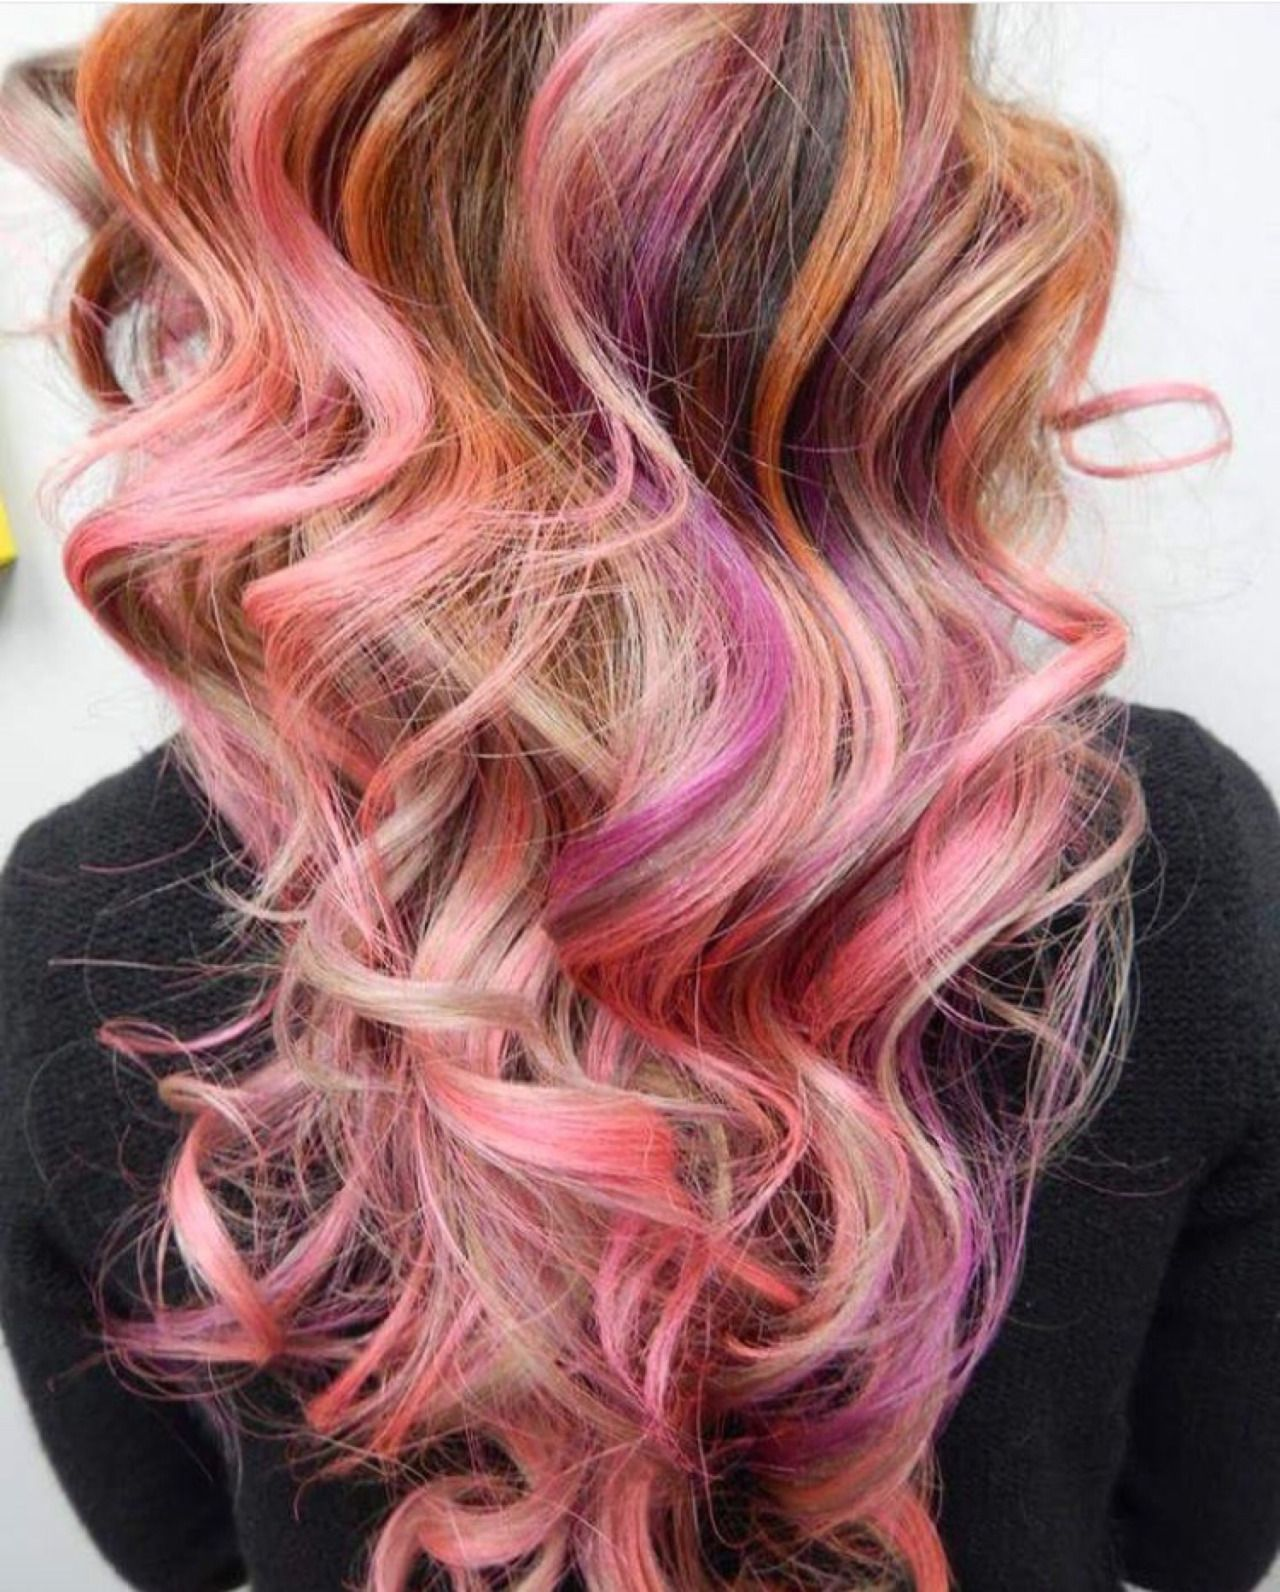 Beautifu hair hair secrets pinterest colourful hair hair